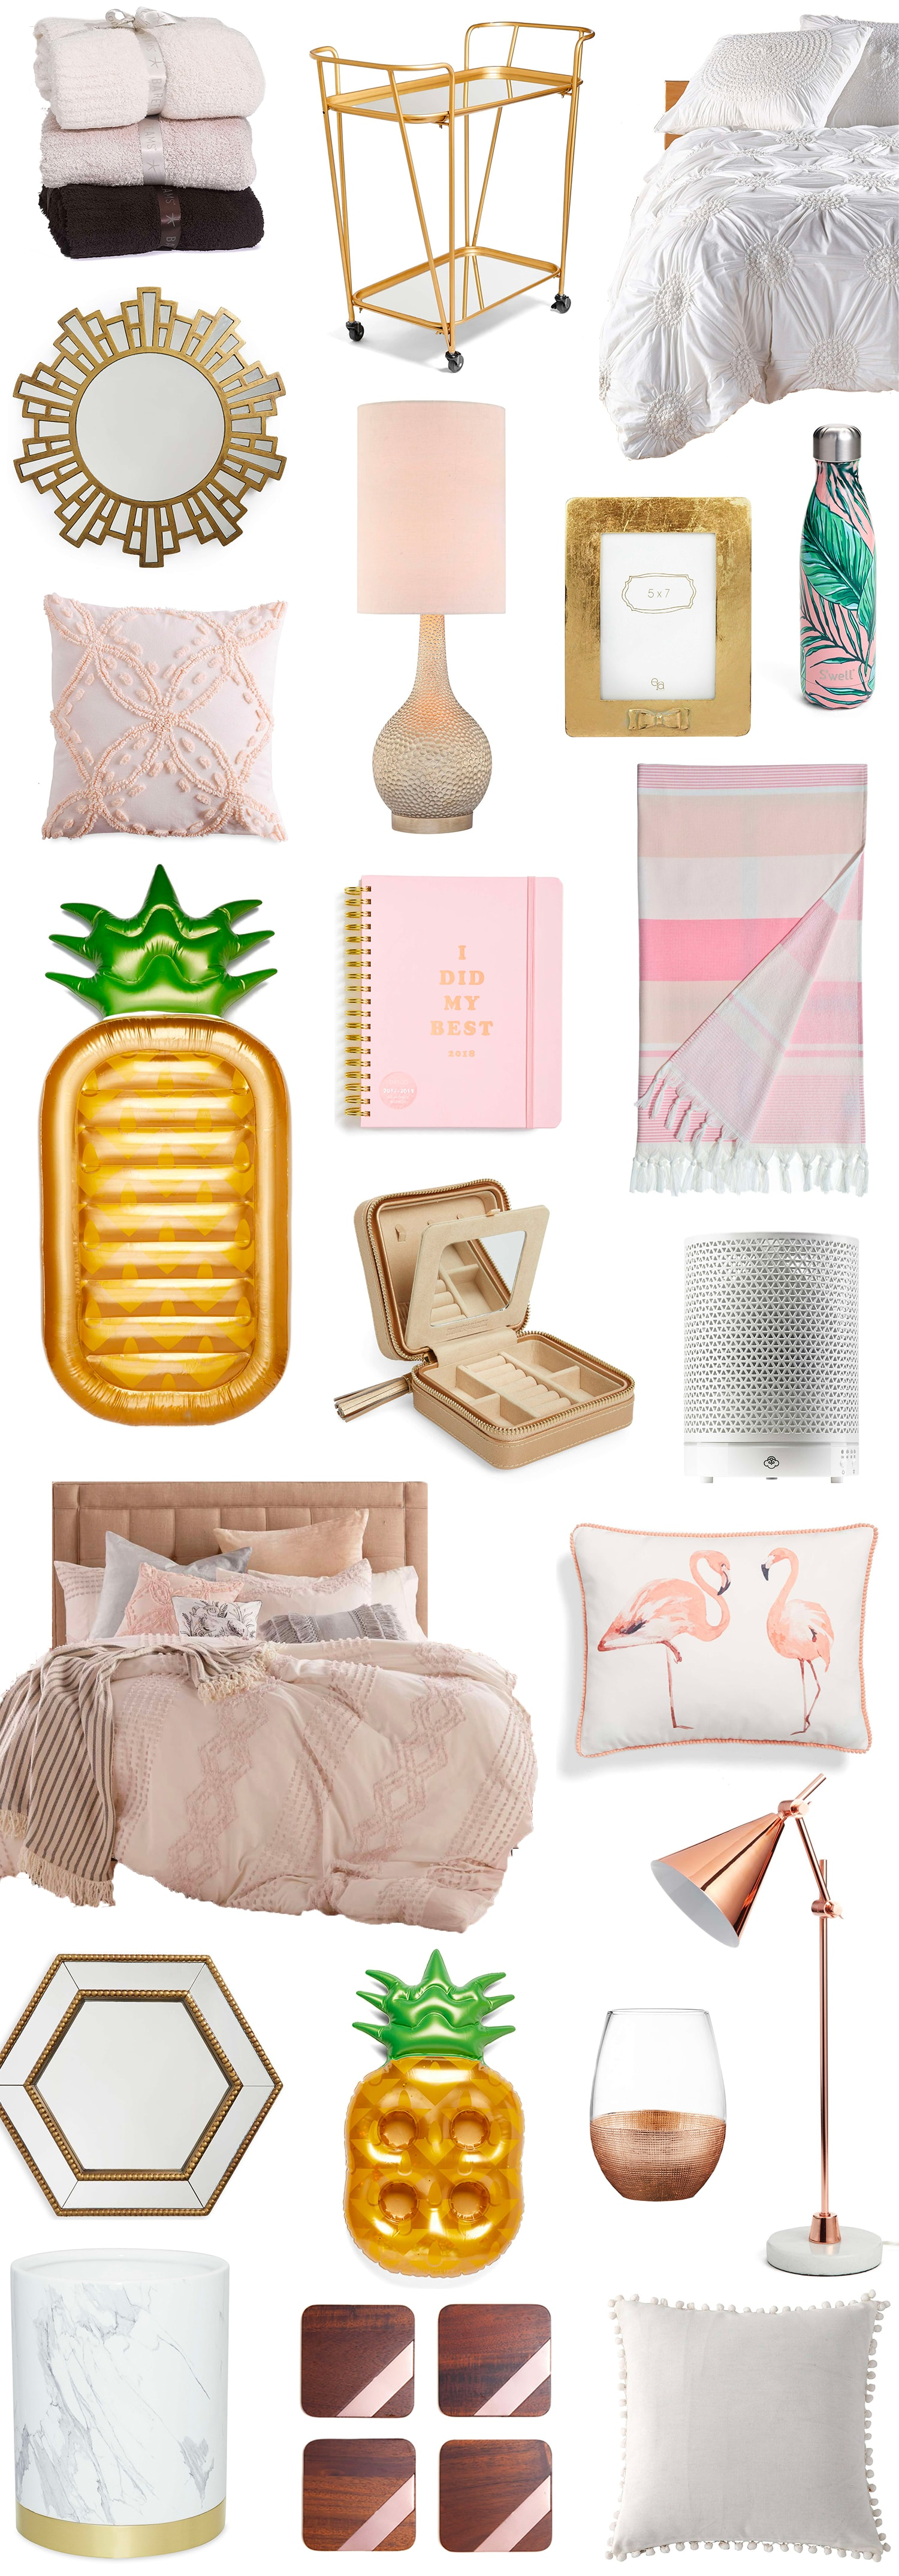 Best home decor deals from the nordstrom anniversary sale Nordstrom home decor sale